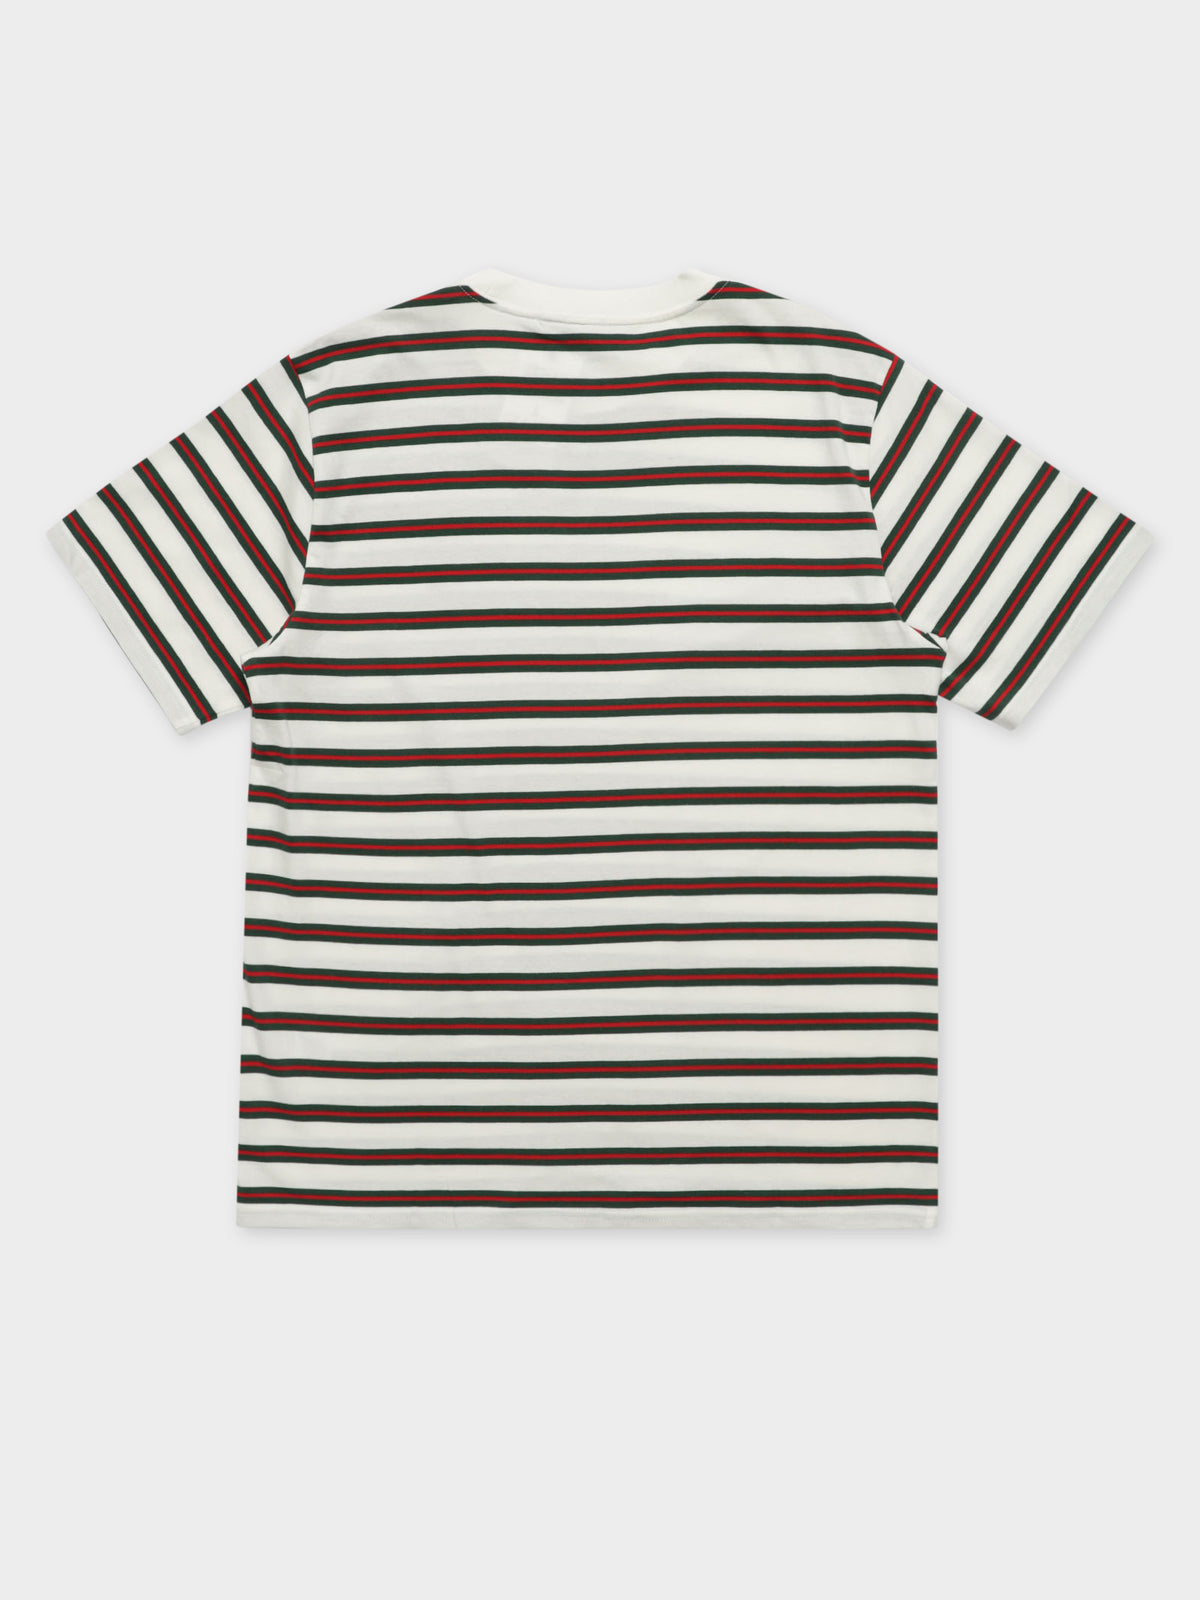 Oakland Short Sleeve T-Shirt in Green & Red Stripe